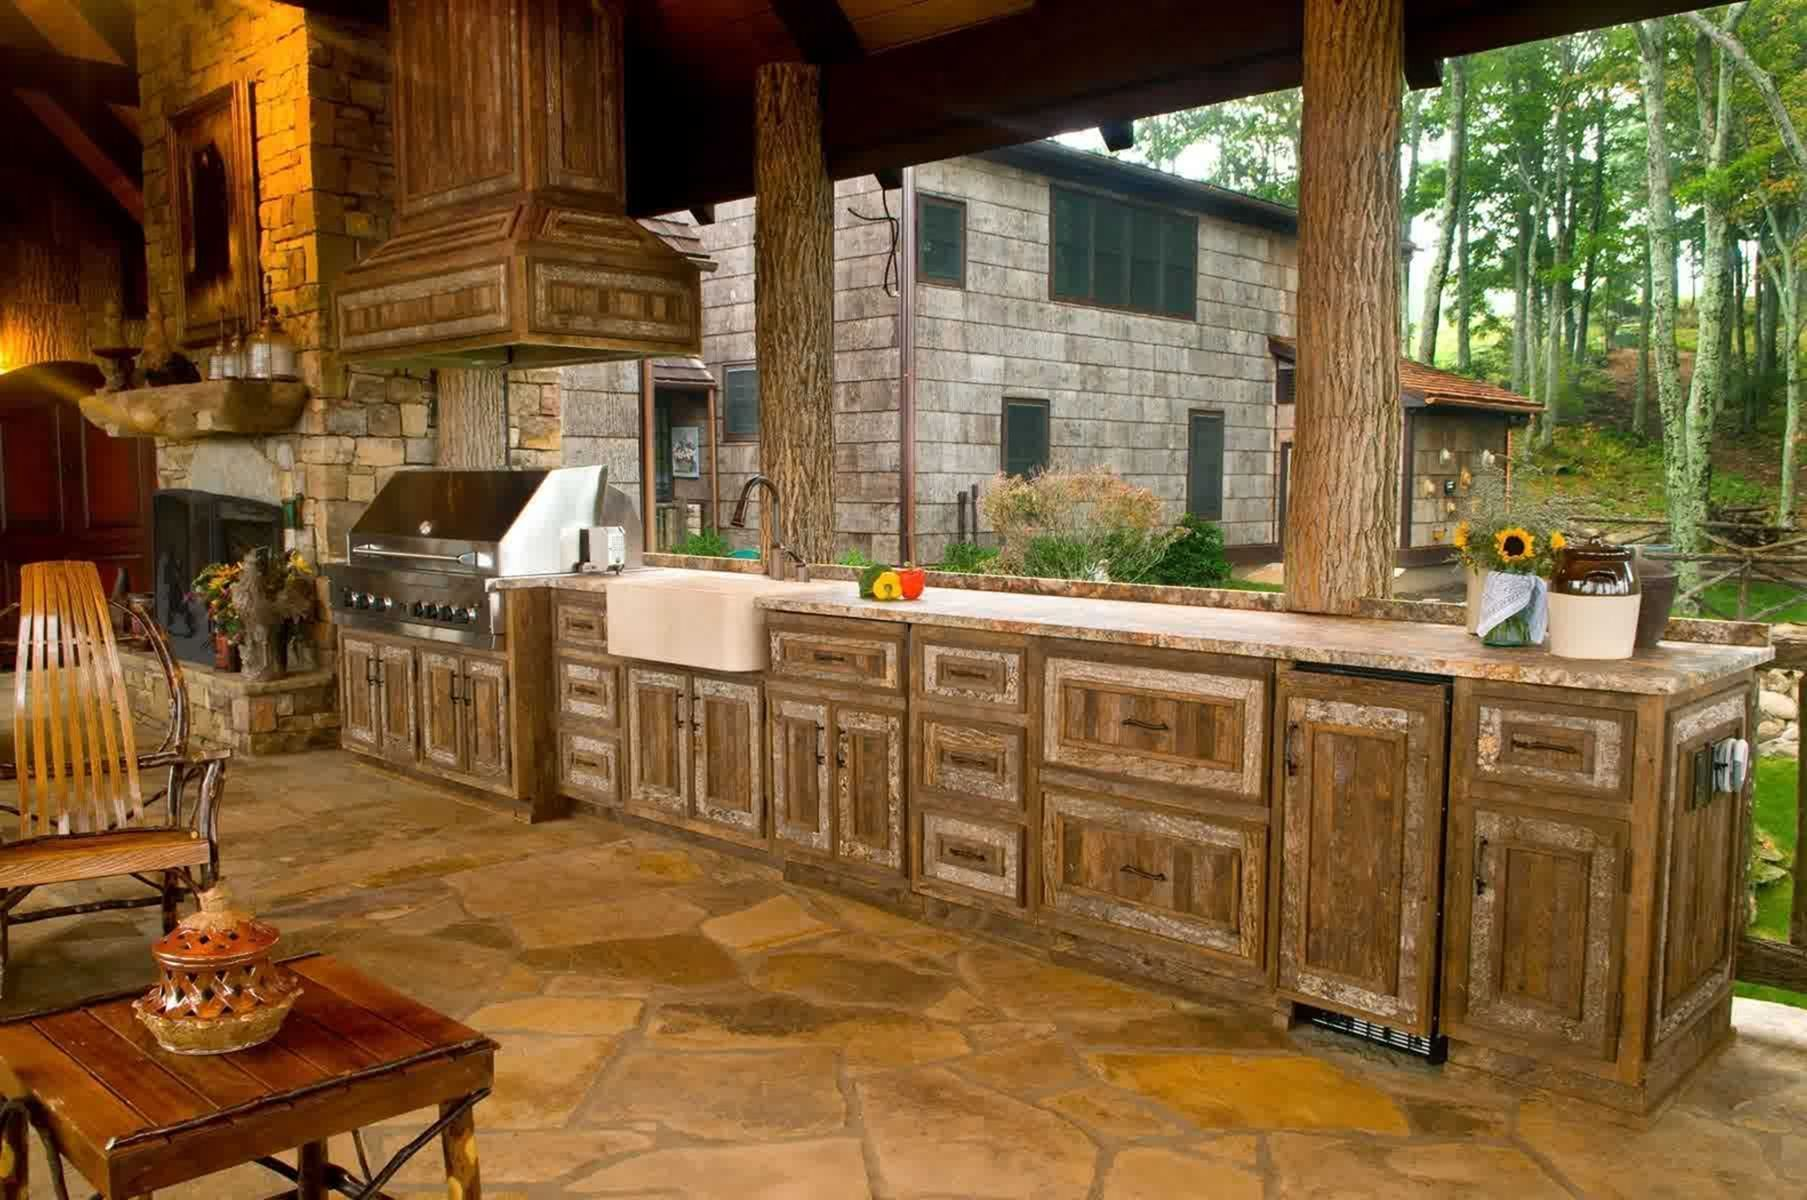 Best Outdoor Kitchen That Will Make Your Outside Area More Exciting Outdoor Kitchen Decor Rustic Outdoor Kitchens Outdoor Kitchen